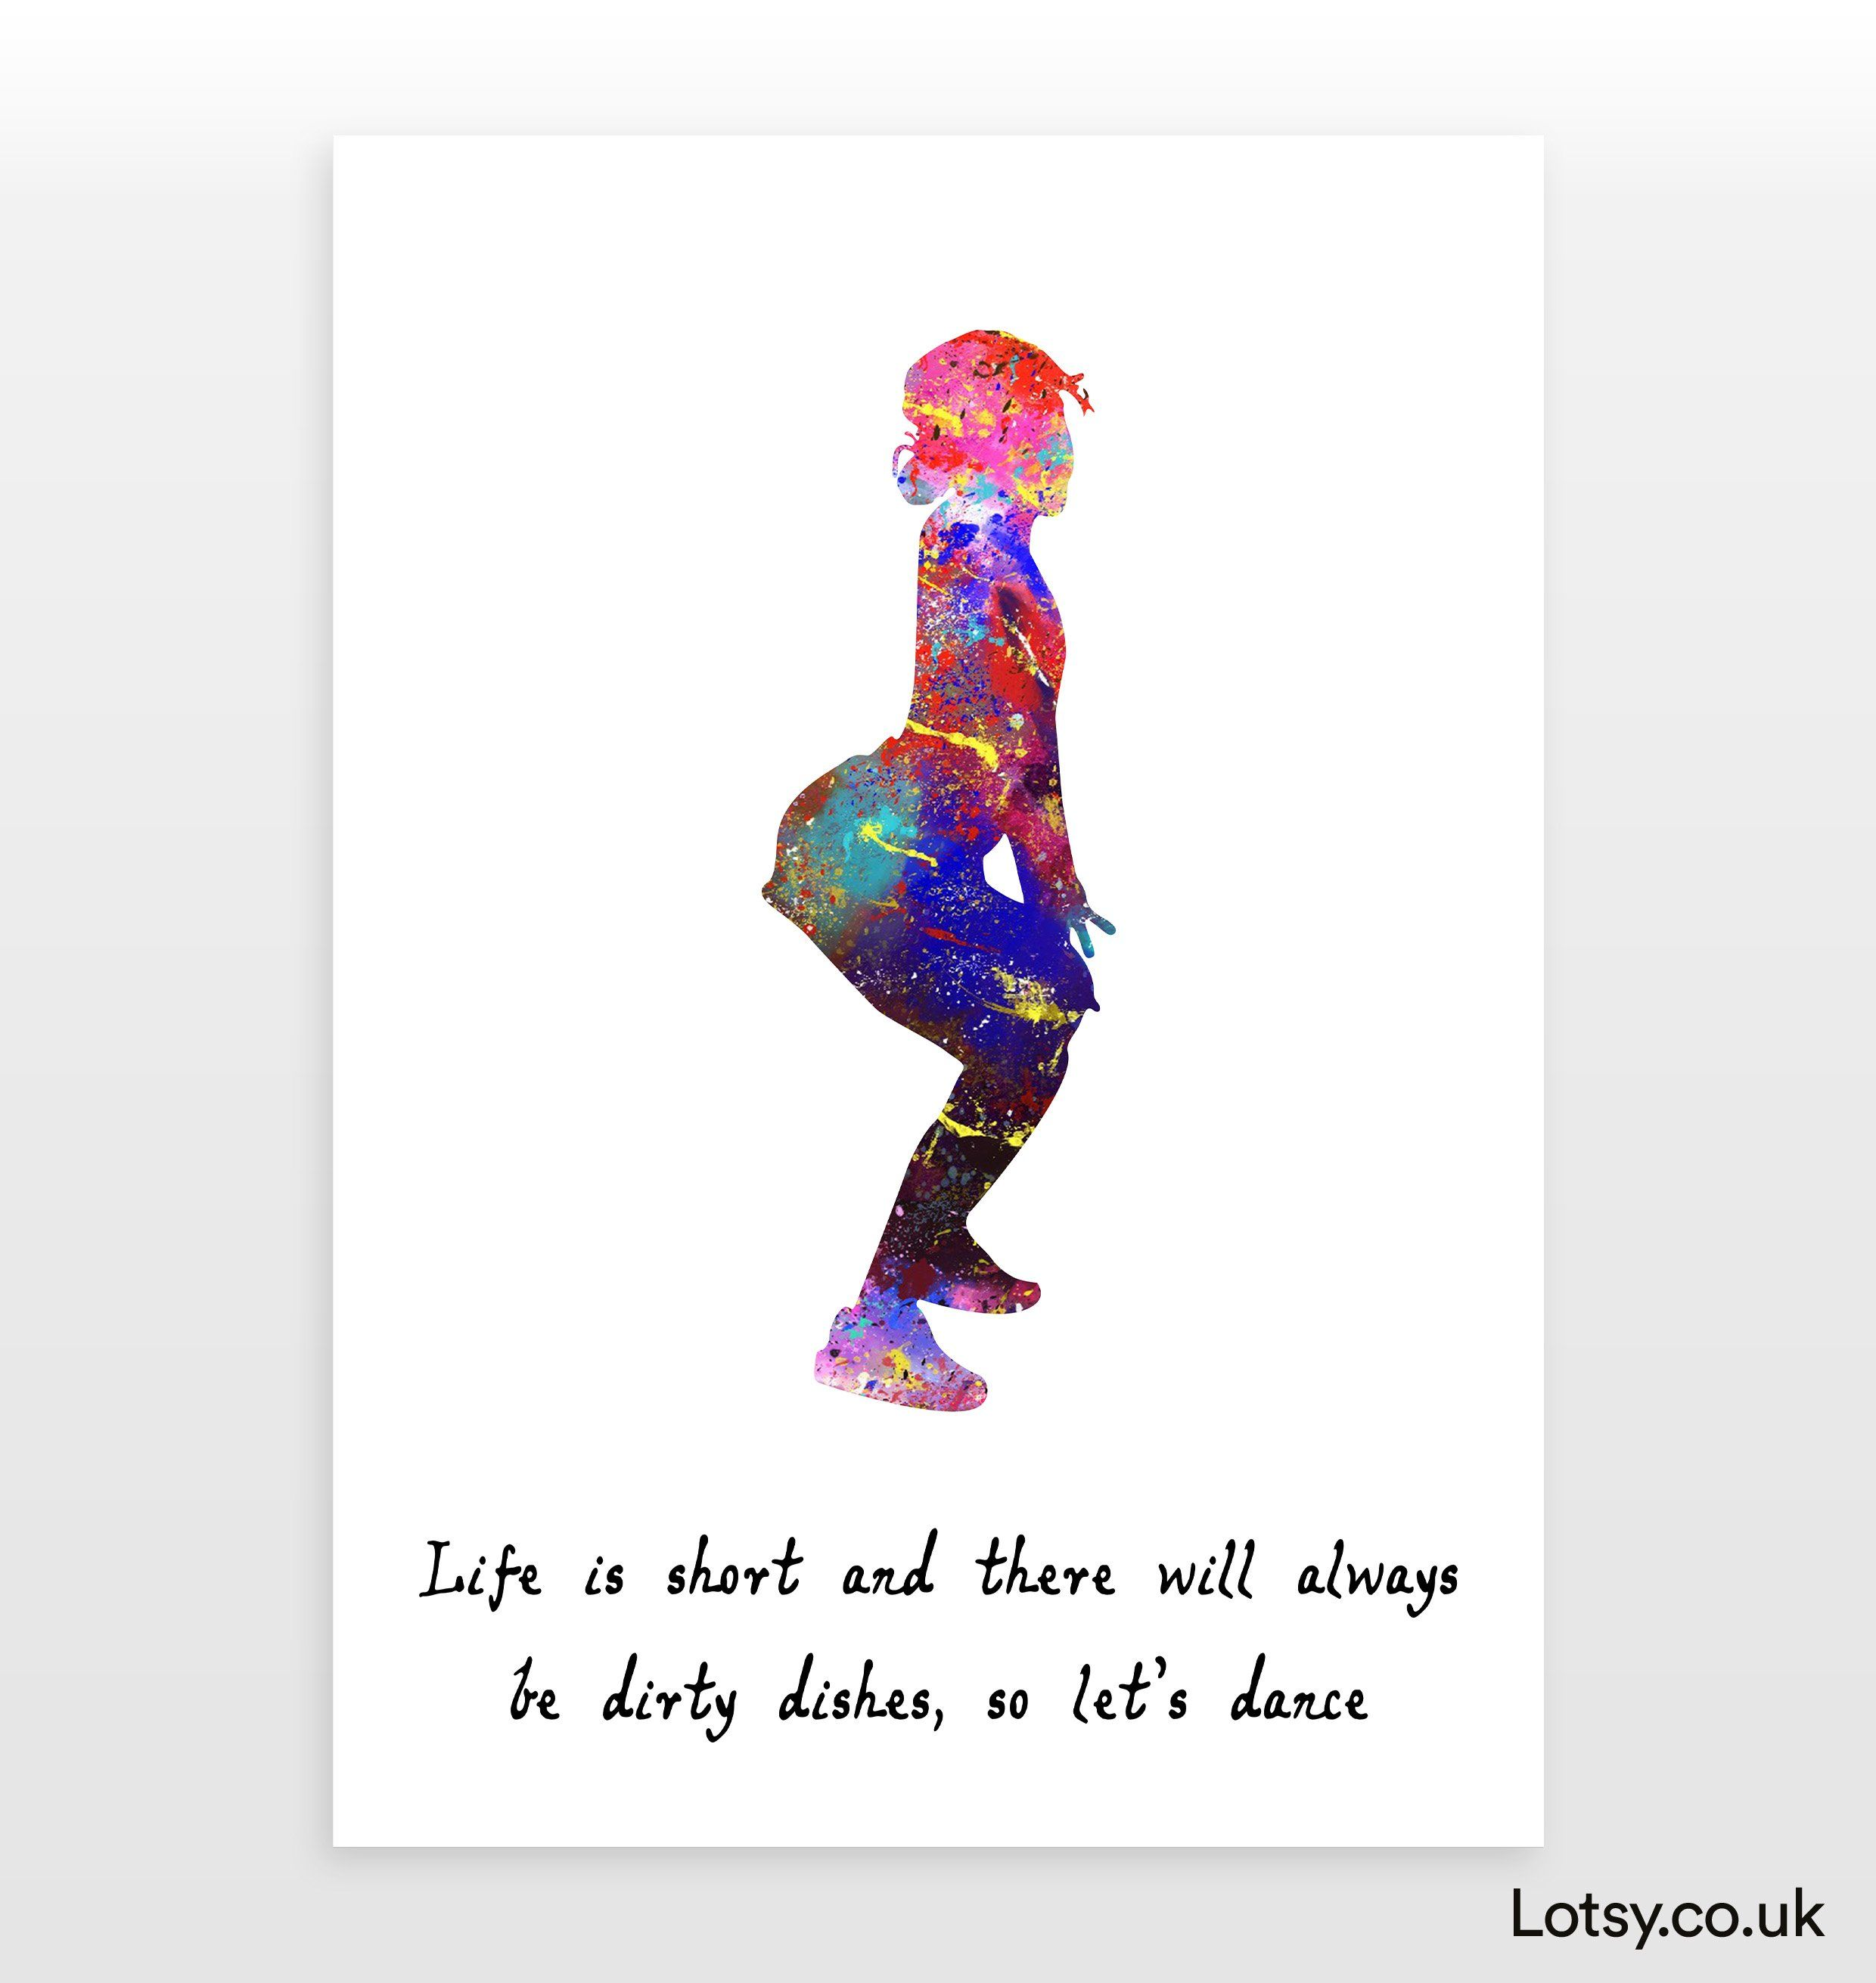 Dancer Quote - Life is short and there will always be dirty dishes, so let's dance - A2 - (420mm x 594mm) (16.5inch x 23.4inch)